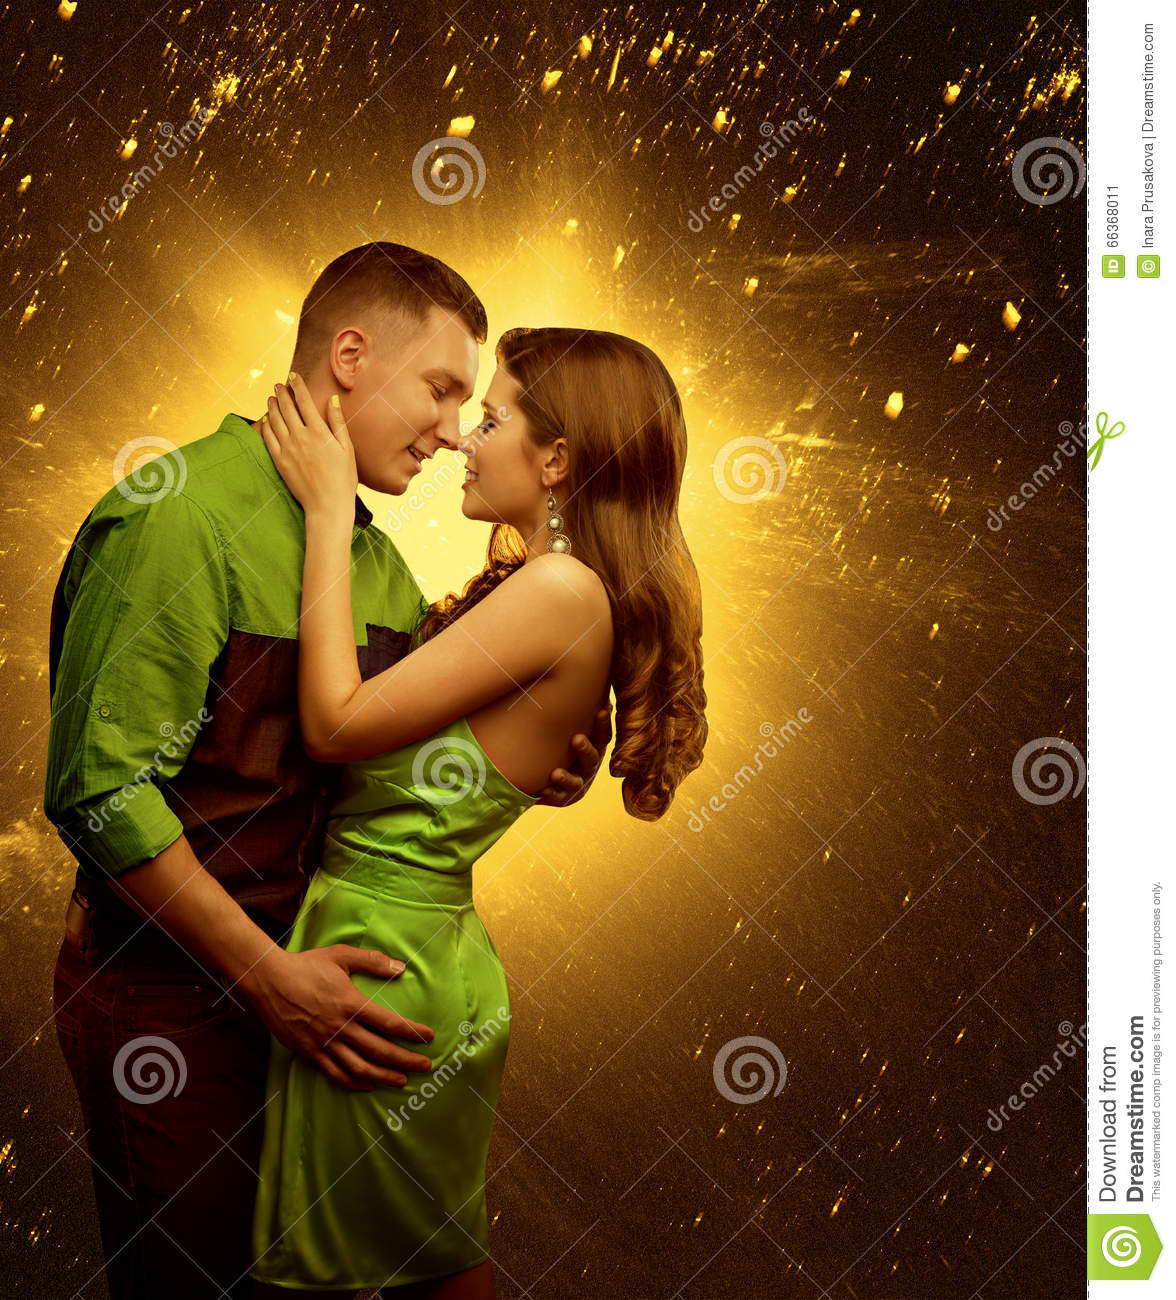 Couple In Love Lover Man Embrace Woman Two Lovers Kiss Stock Image Image Of Fashion Dancing 66368011